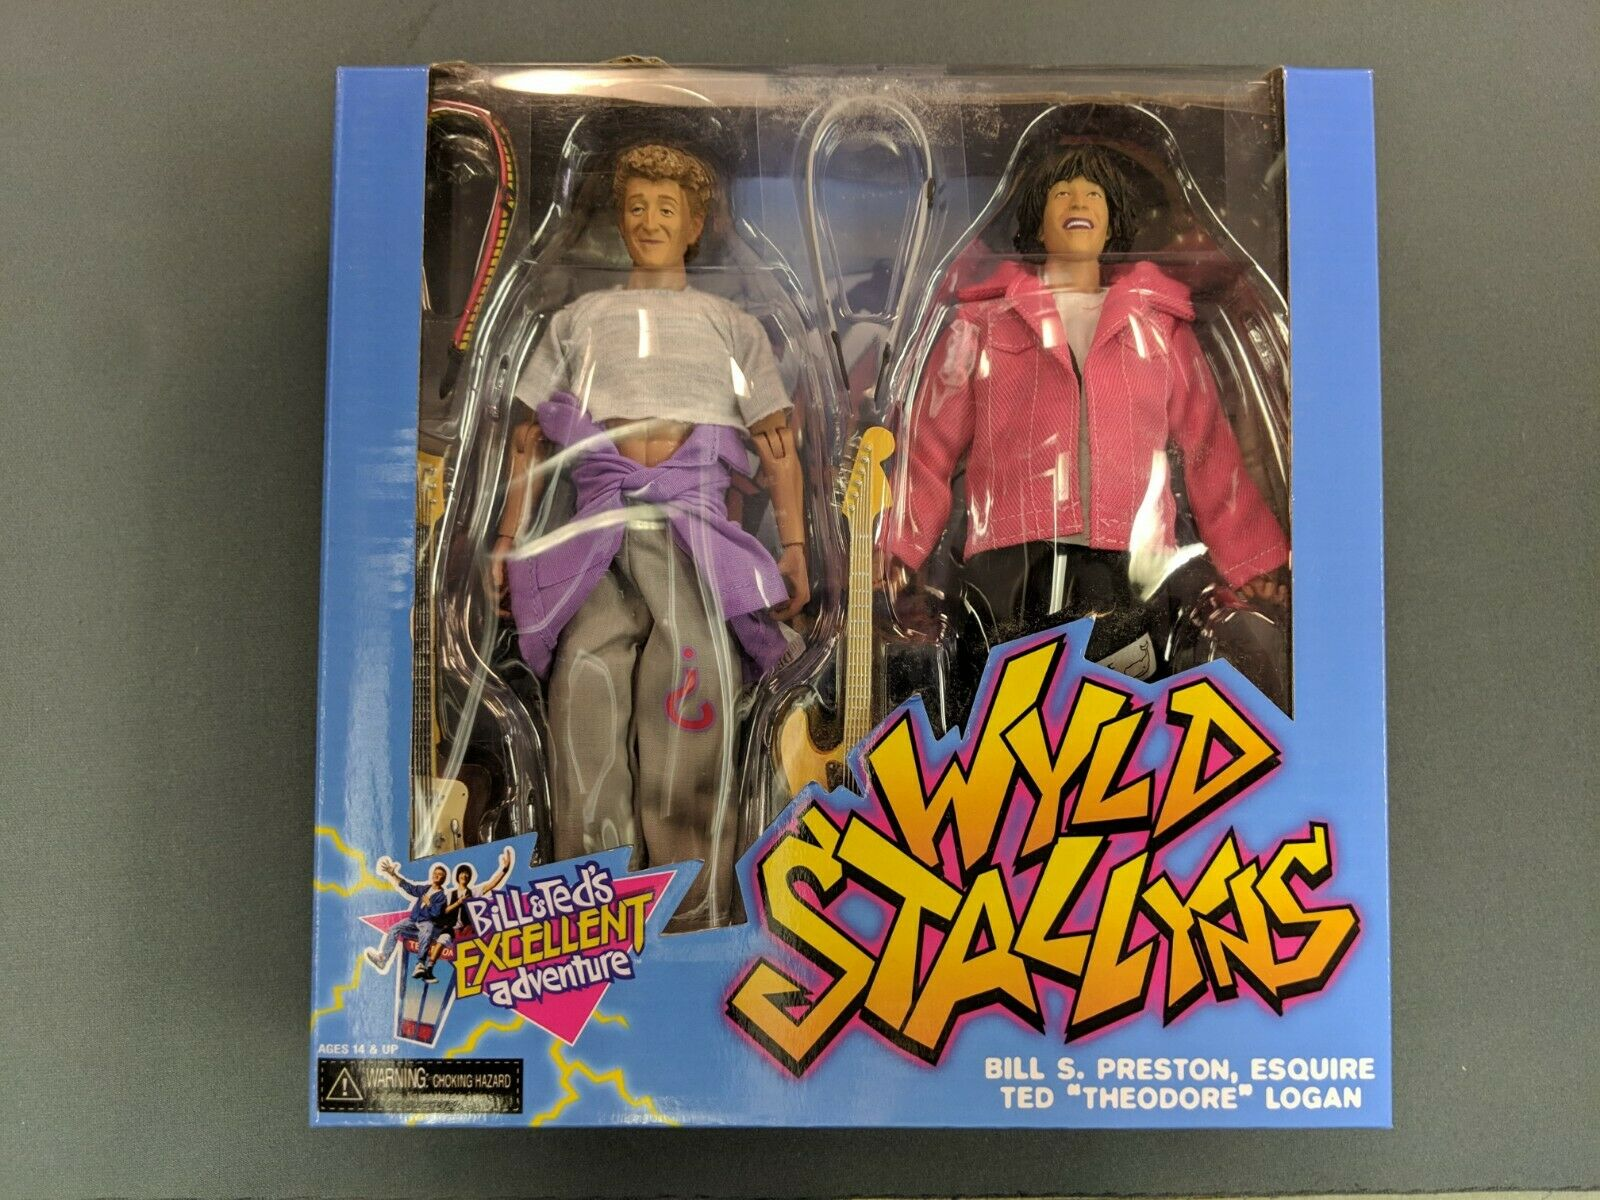 BILL & TED'S TED'S TED'S EXCELLENT ADVENTURE - WYLD STALLYNS - 8  azione cifra BOX SET 2016 dce582